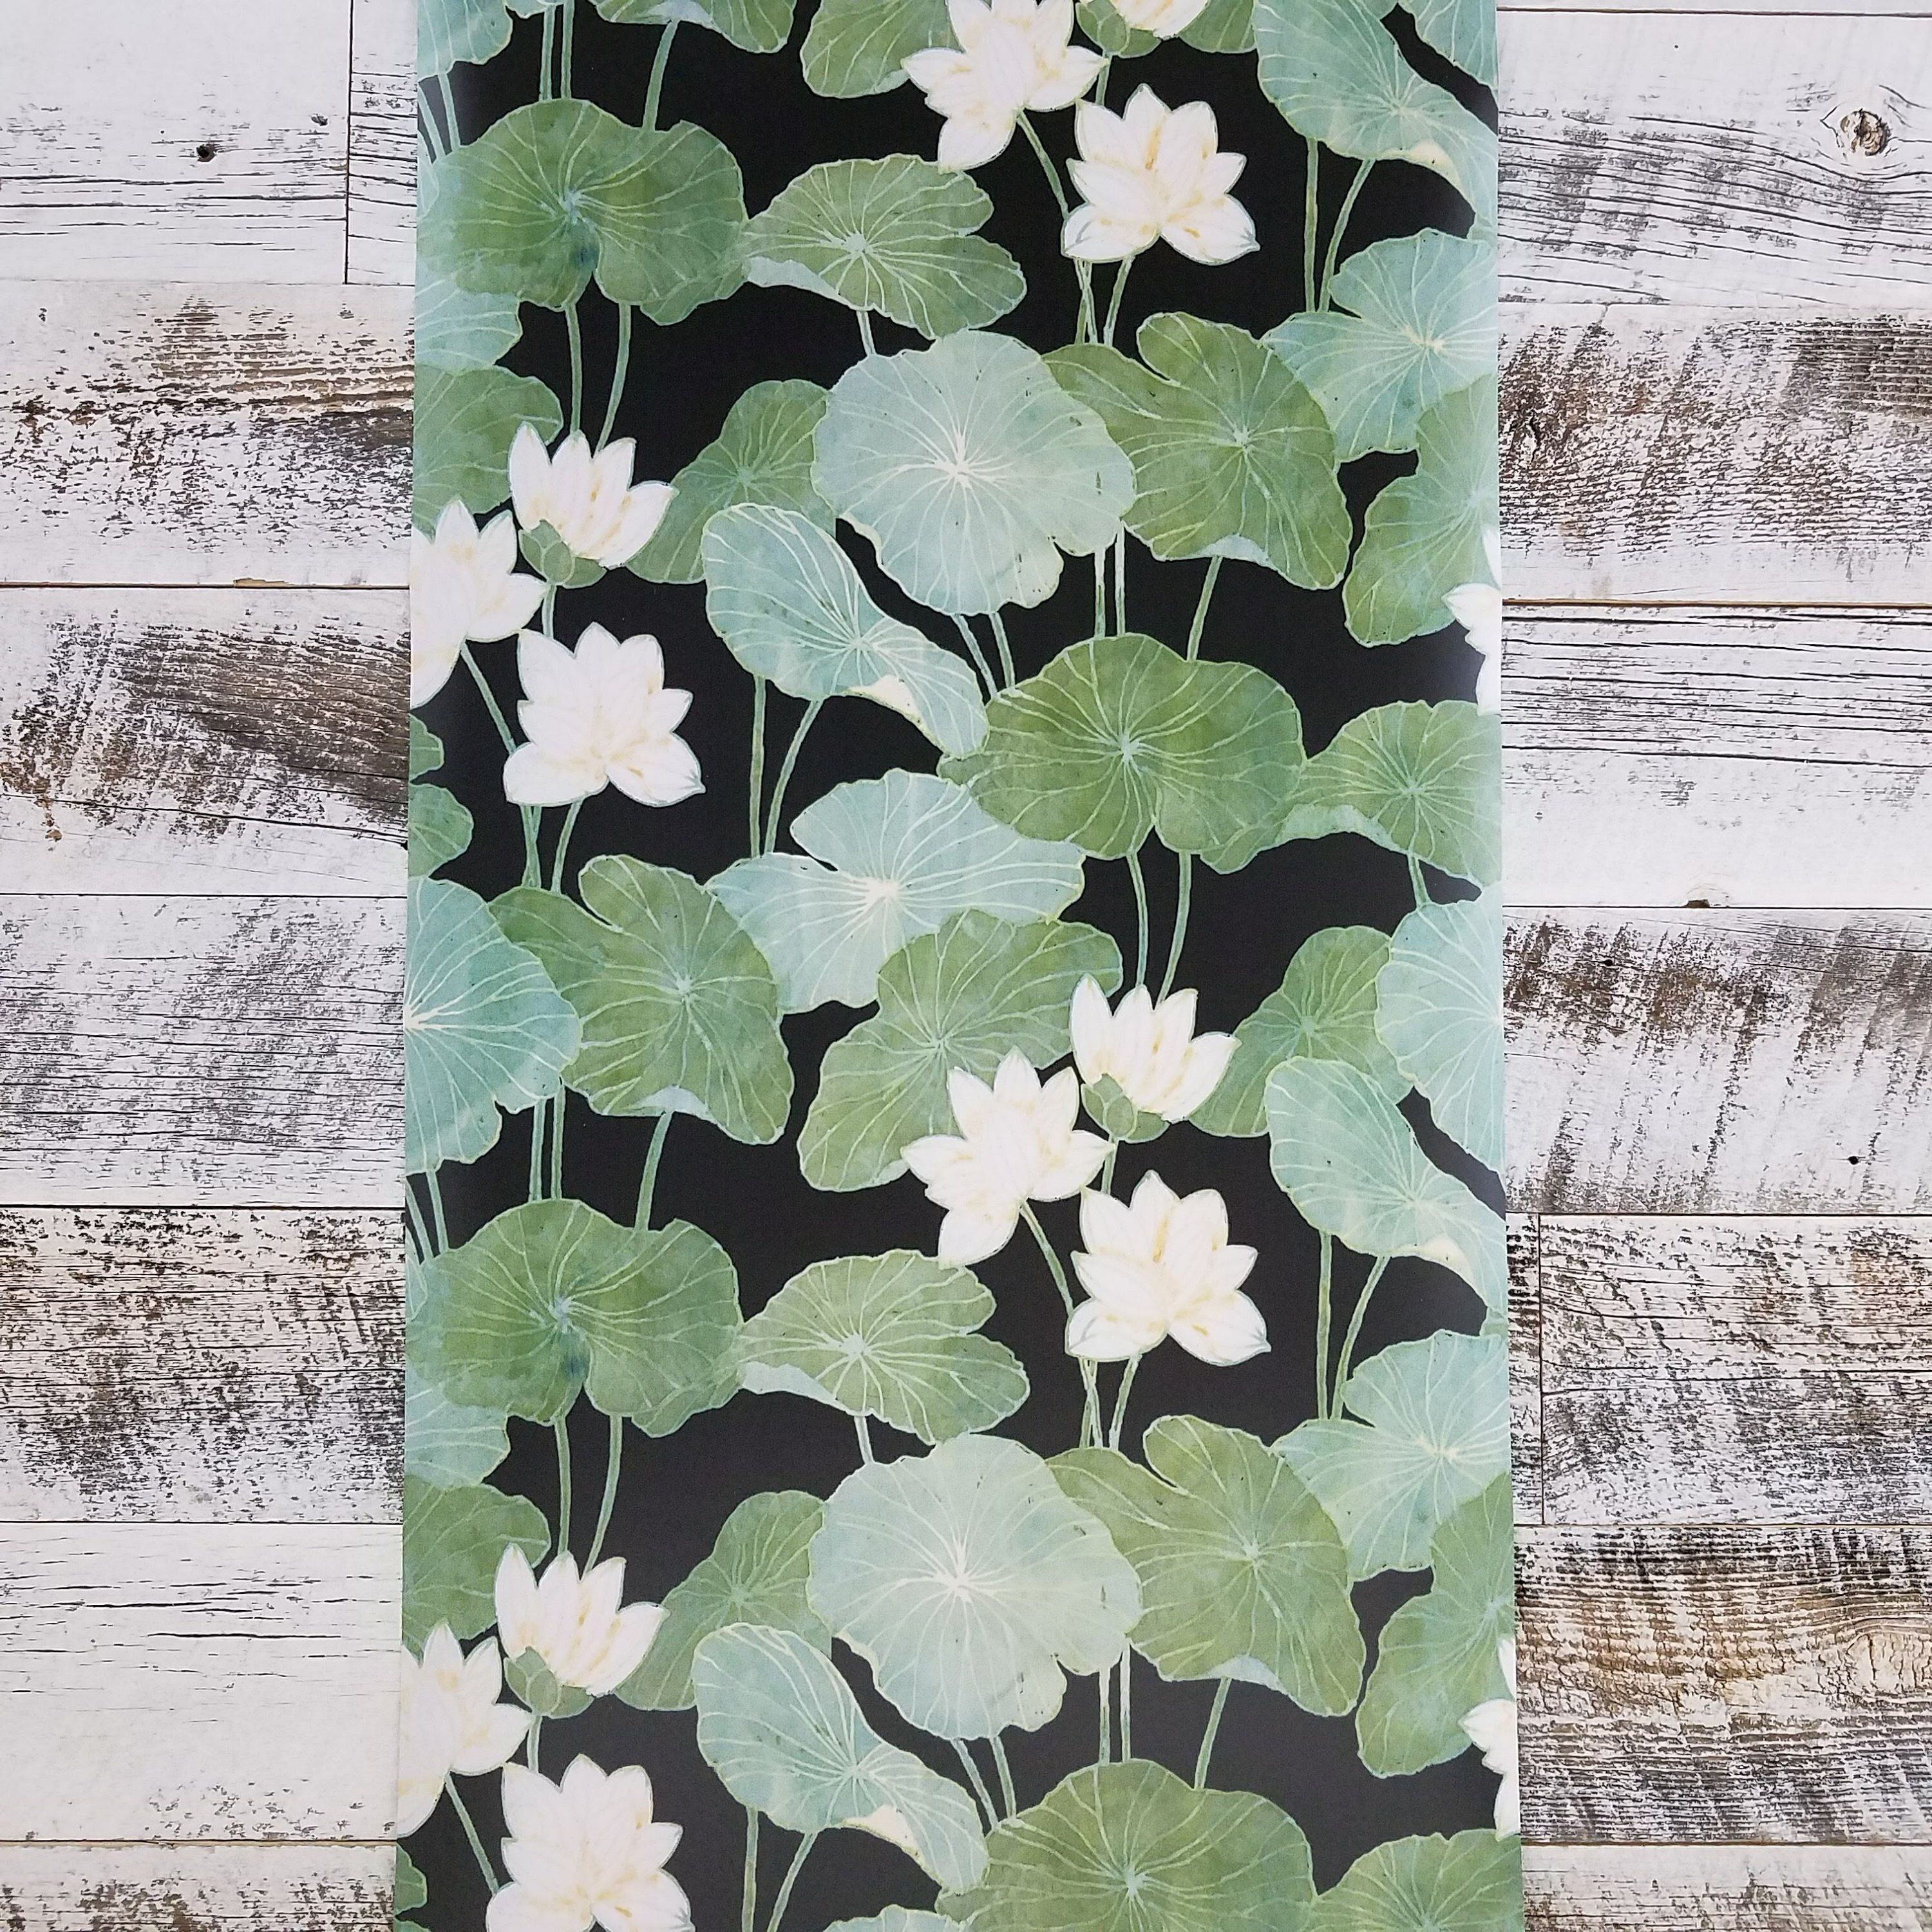 Roommates Lily Pads Peel And Stick Black And Green Wallpaper Etsy In 2020 Vintage Floral Wallpapers Floral Wallpaper Green Wallpaper